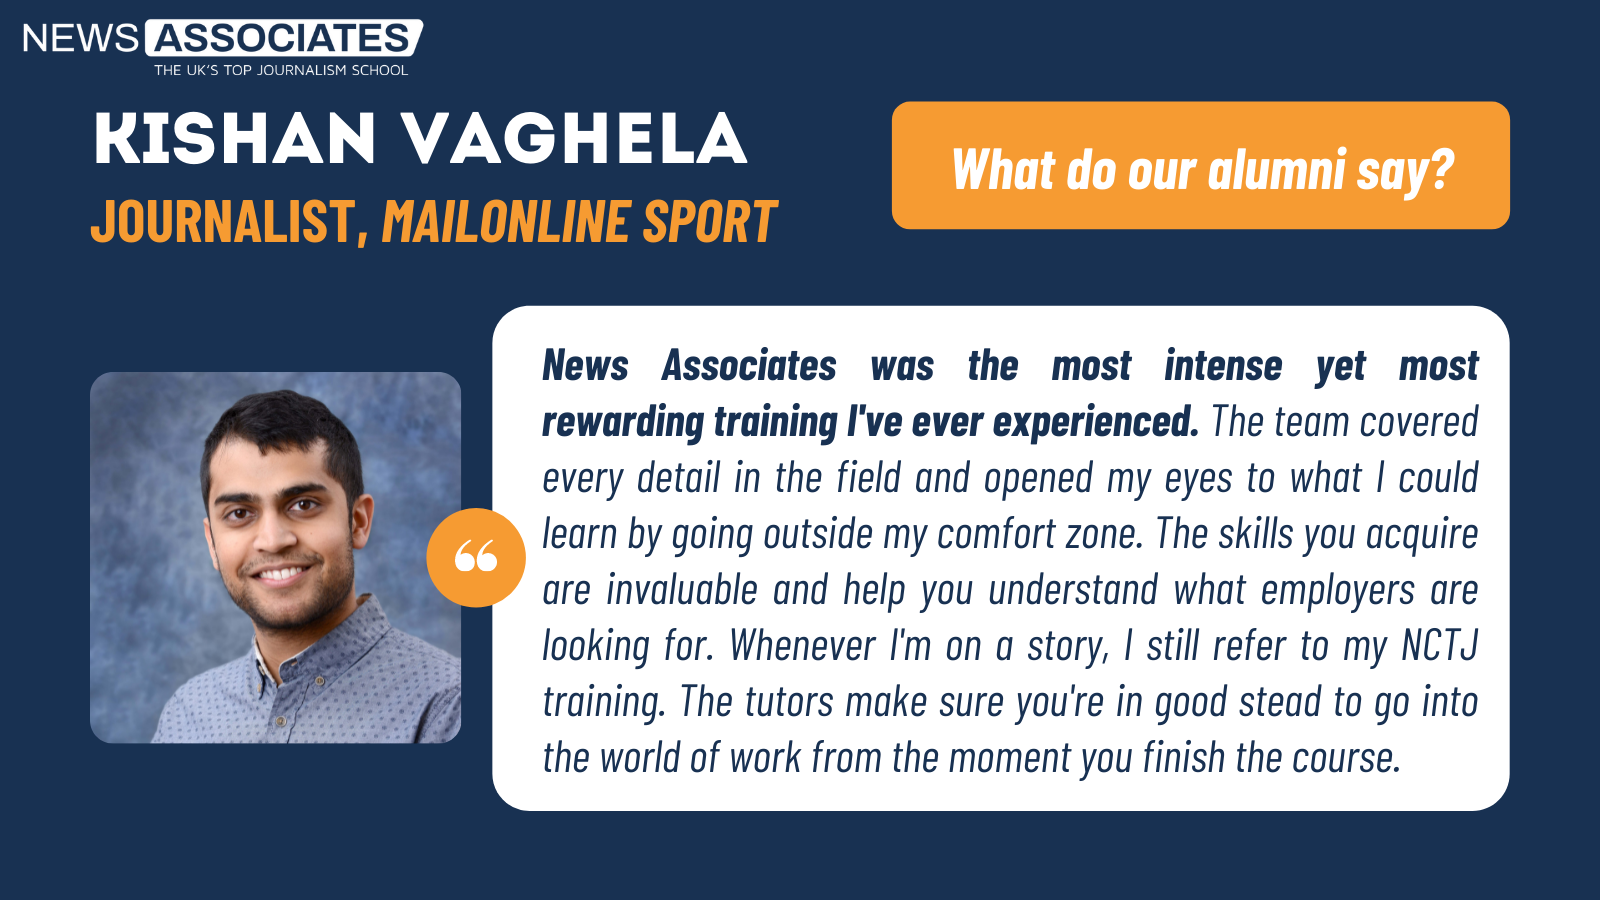 Kishan Vaghela, MailOnline Sport, gives his testimonial: News Associates was the most intense yet most rewarding training I've ever experienced. The team covered every detail in the field and opened my eyes to what I could learn by going outside my comfort zone. The skills you acquire are invaluable and help you understand what employers are looking for. Whenever I'm on a story, I still refer to my NCTJ training. The tutors make sure you're in good stead to go into the world of work from the moment you finish the course.